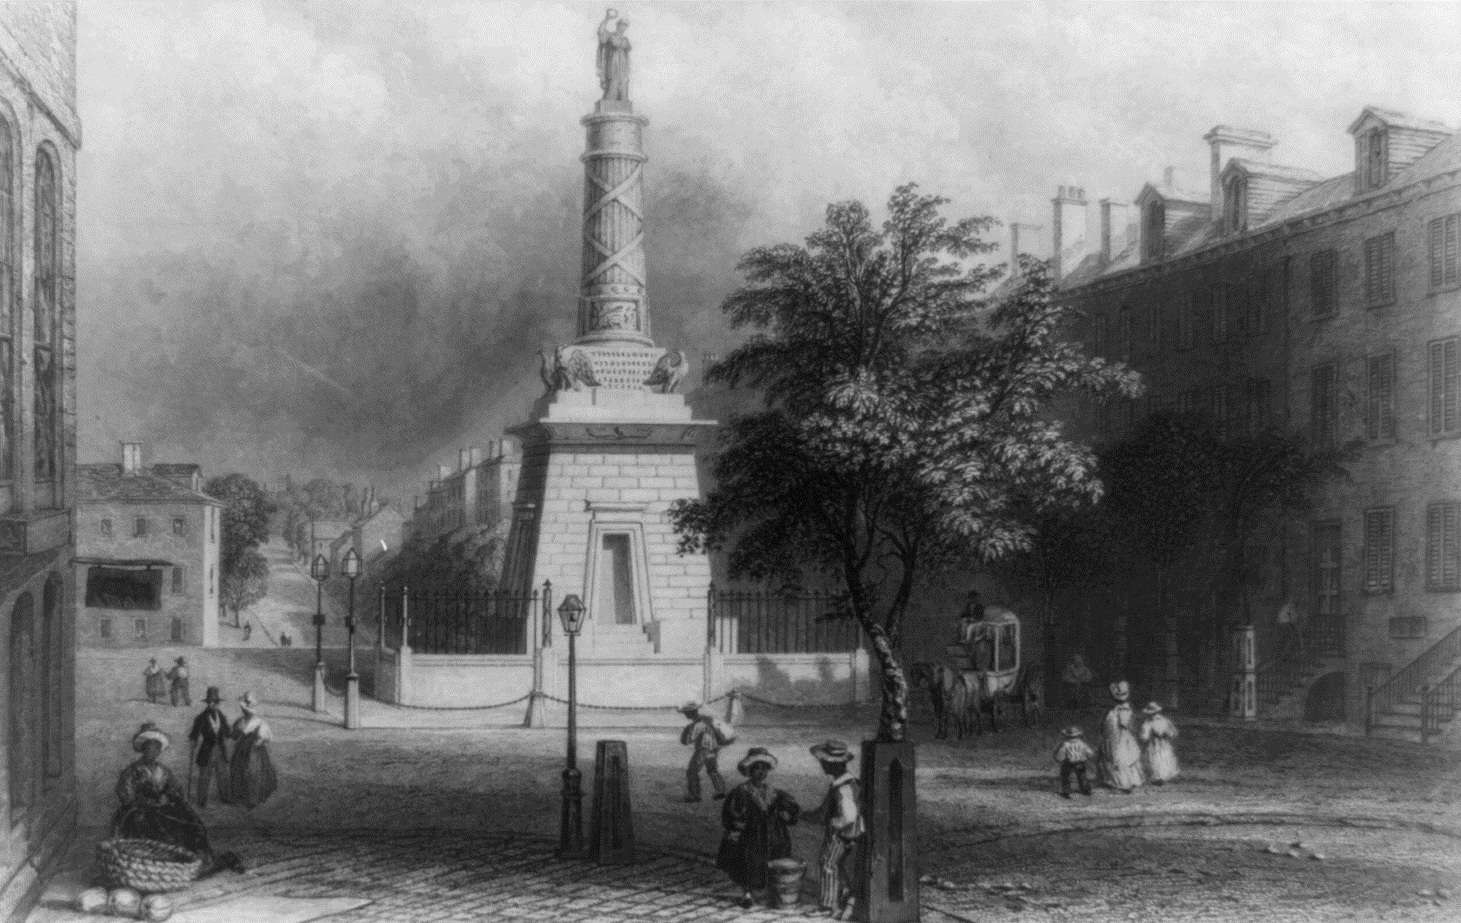 Lithograph of Baltimore's Battle Monument